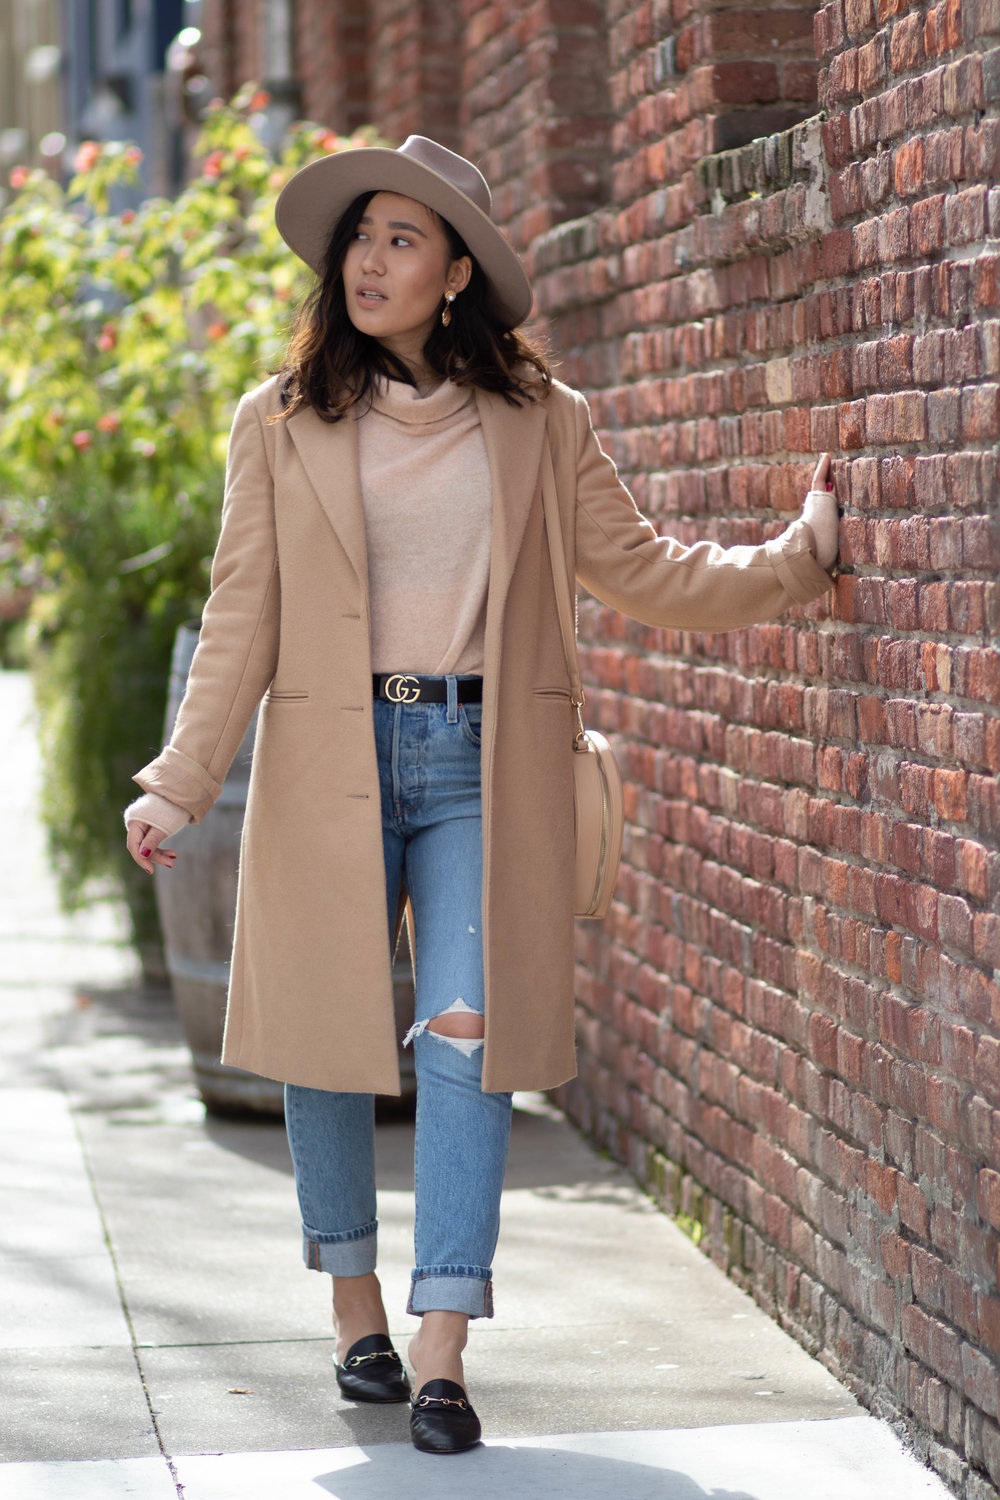 cashmere-sweater-freepeople-sanfrancisco